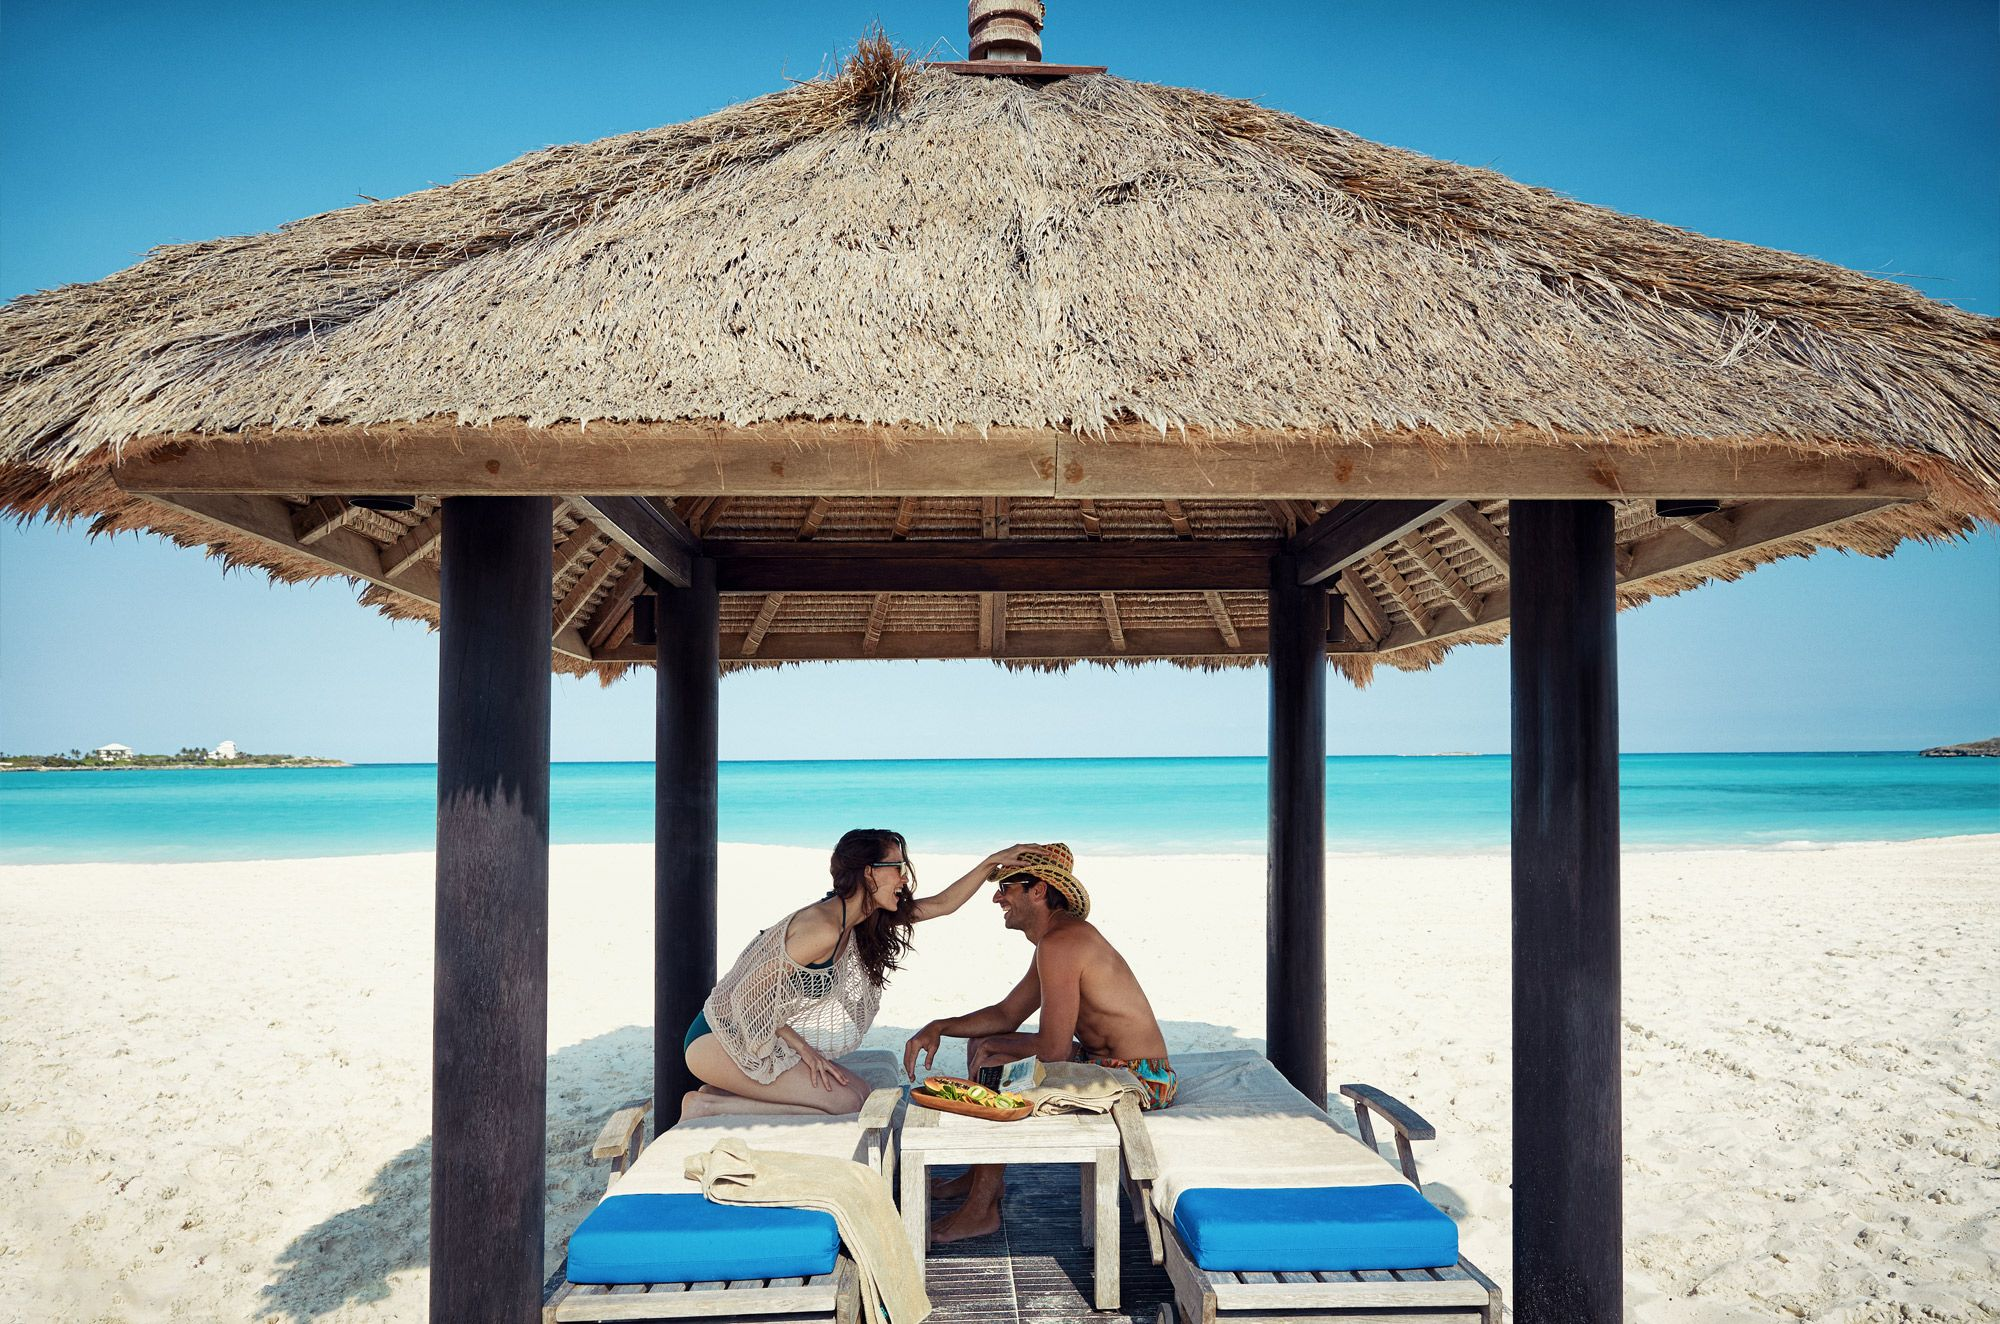 Couple in Cabana